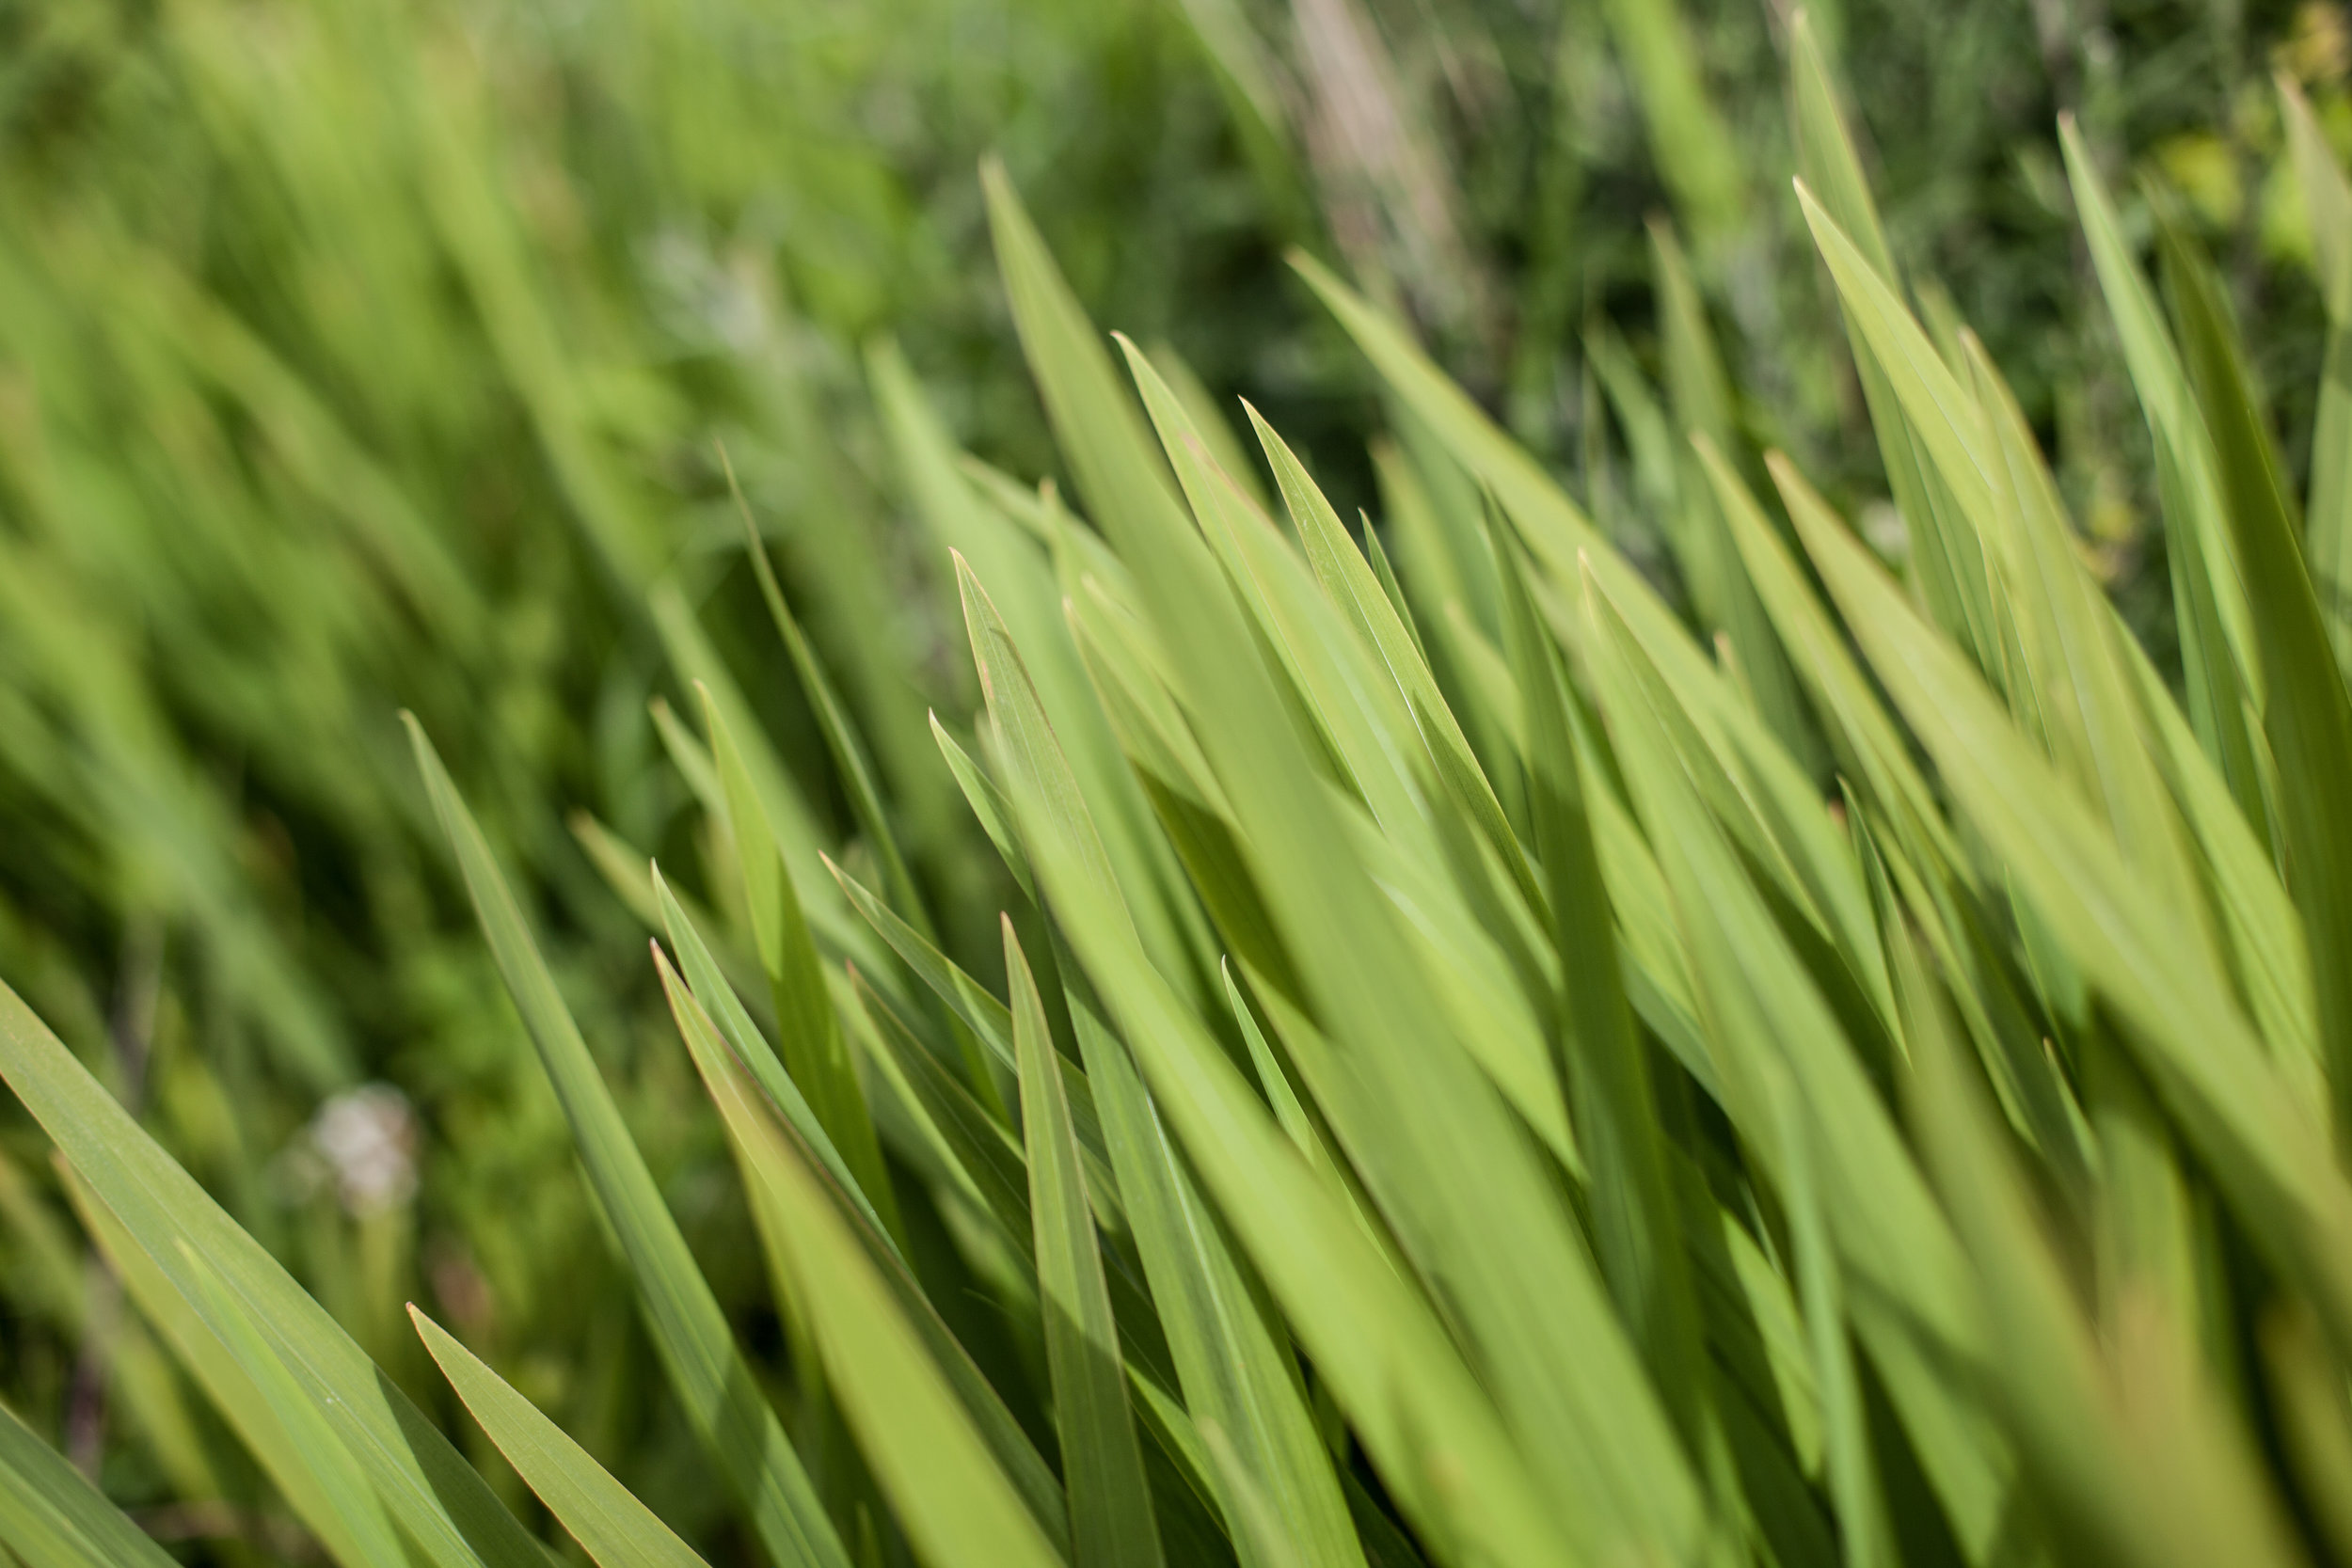 An artistic close up of some grass in Great Britain.